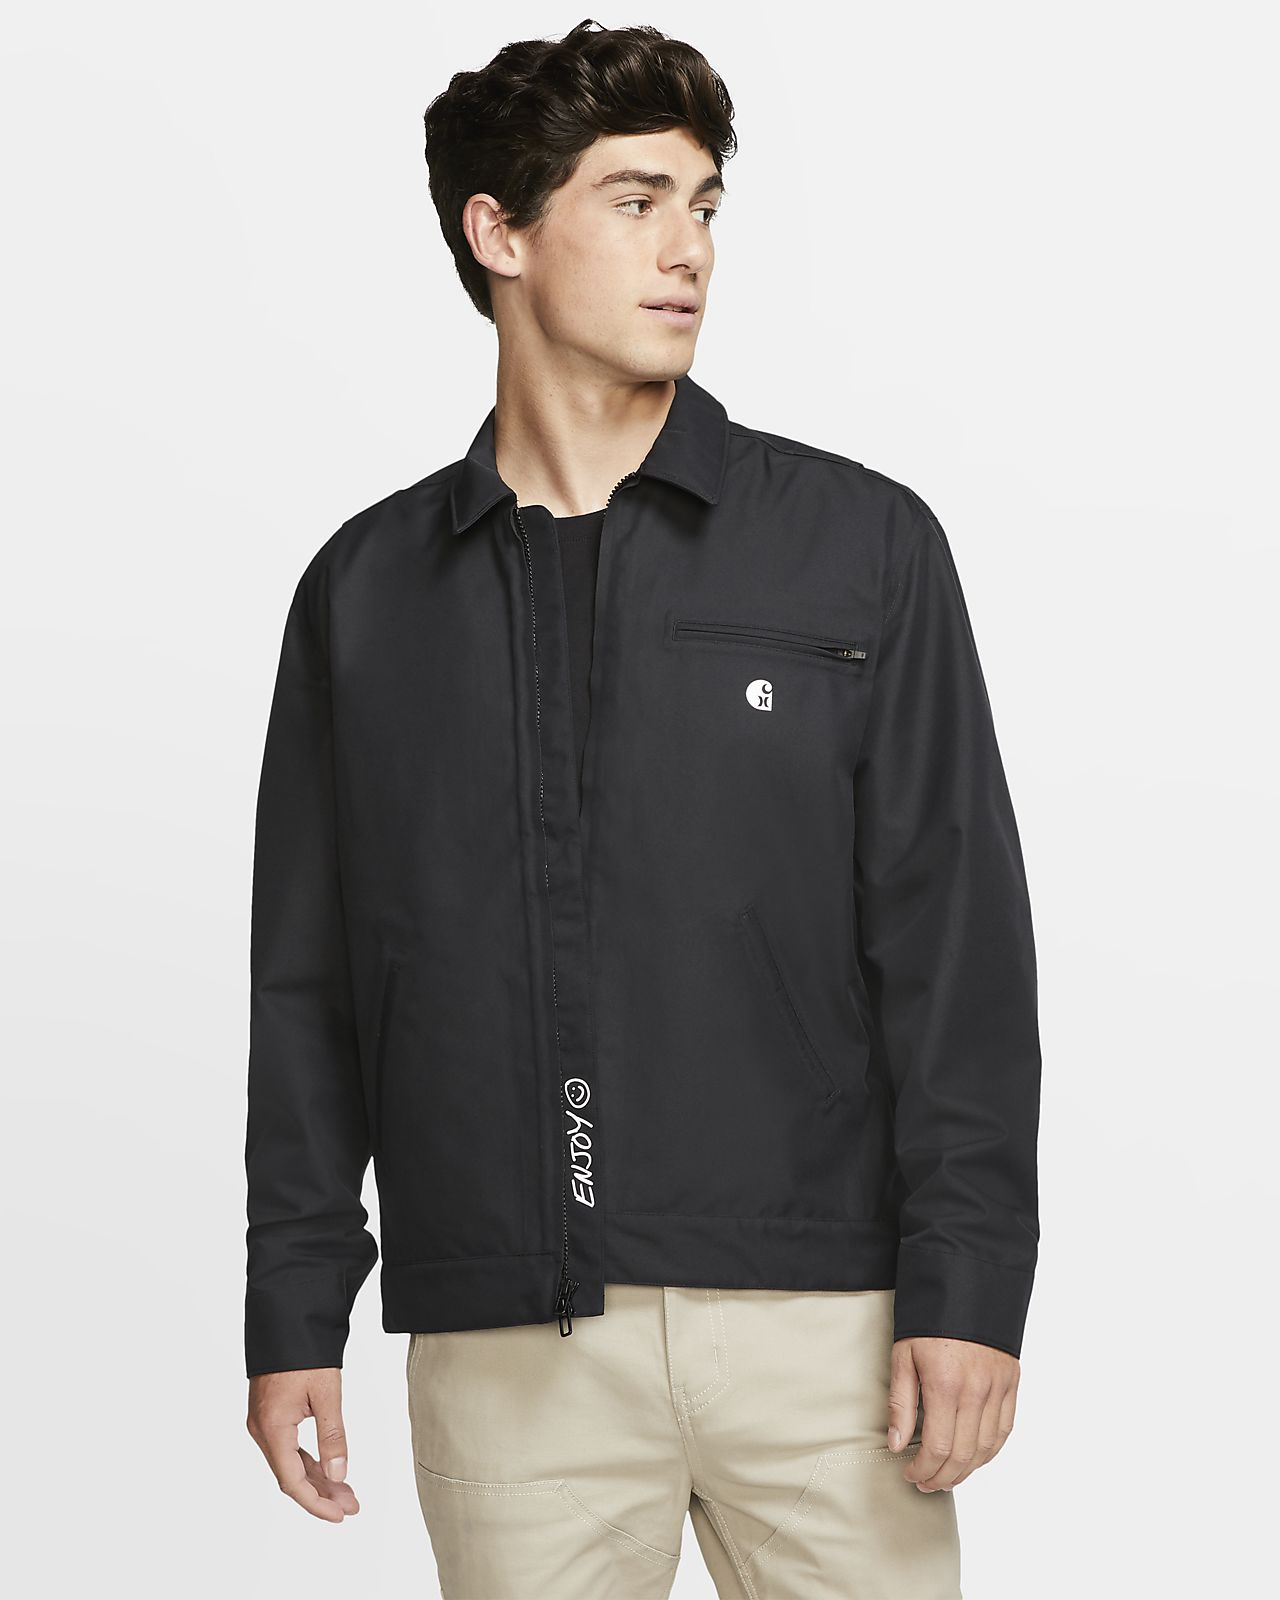 Hurley x Carhartt Detroit Men's Jacket